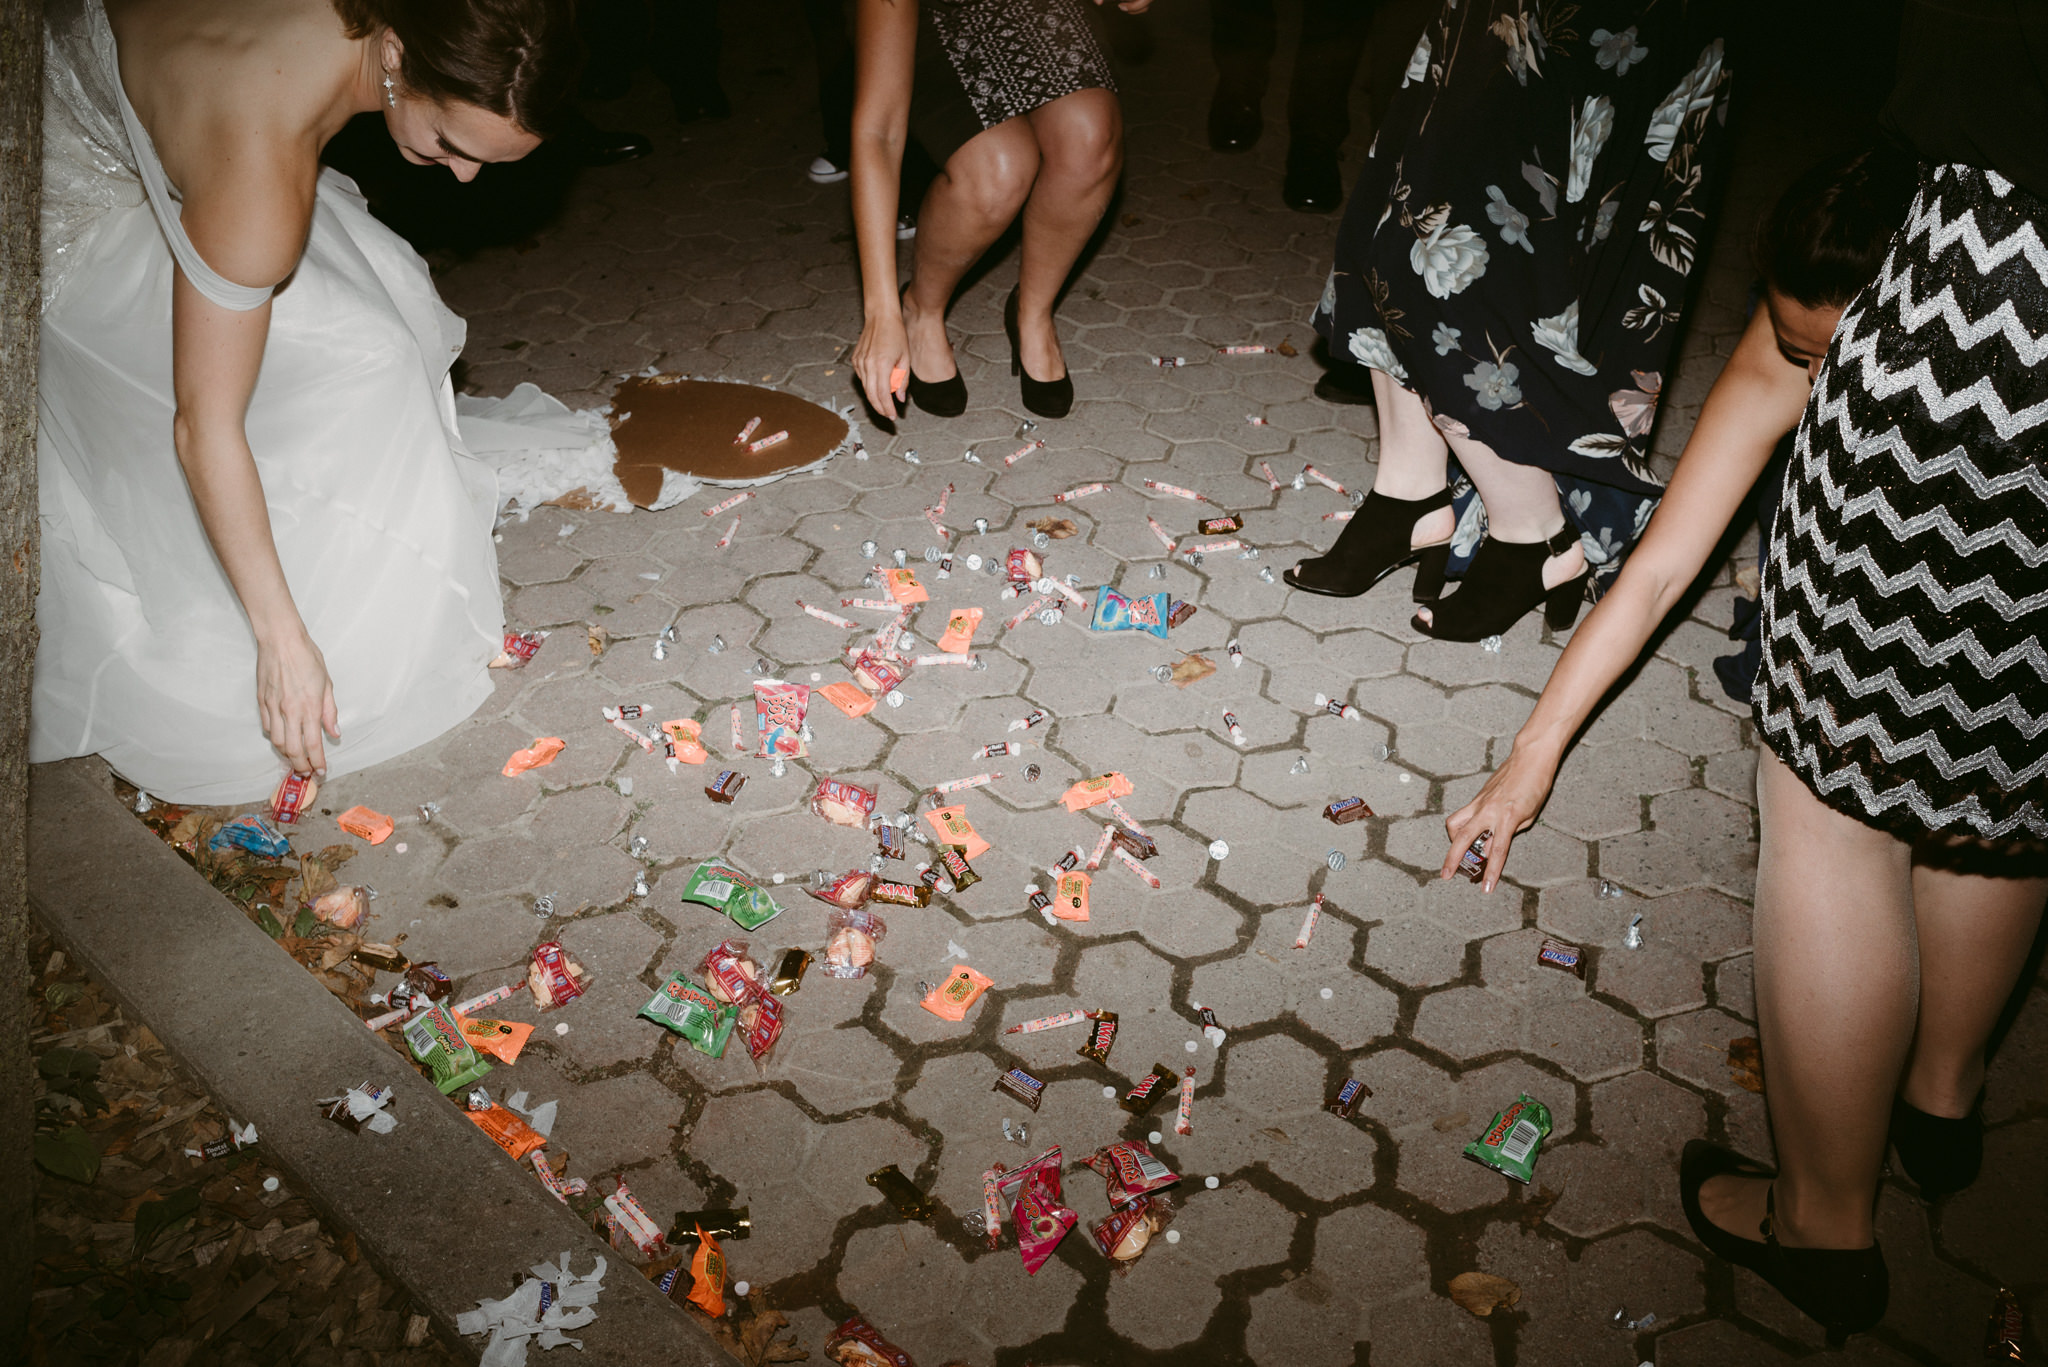 Candy from piñata on ground at wedding reception